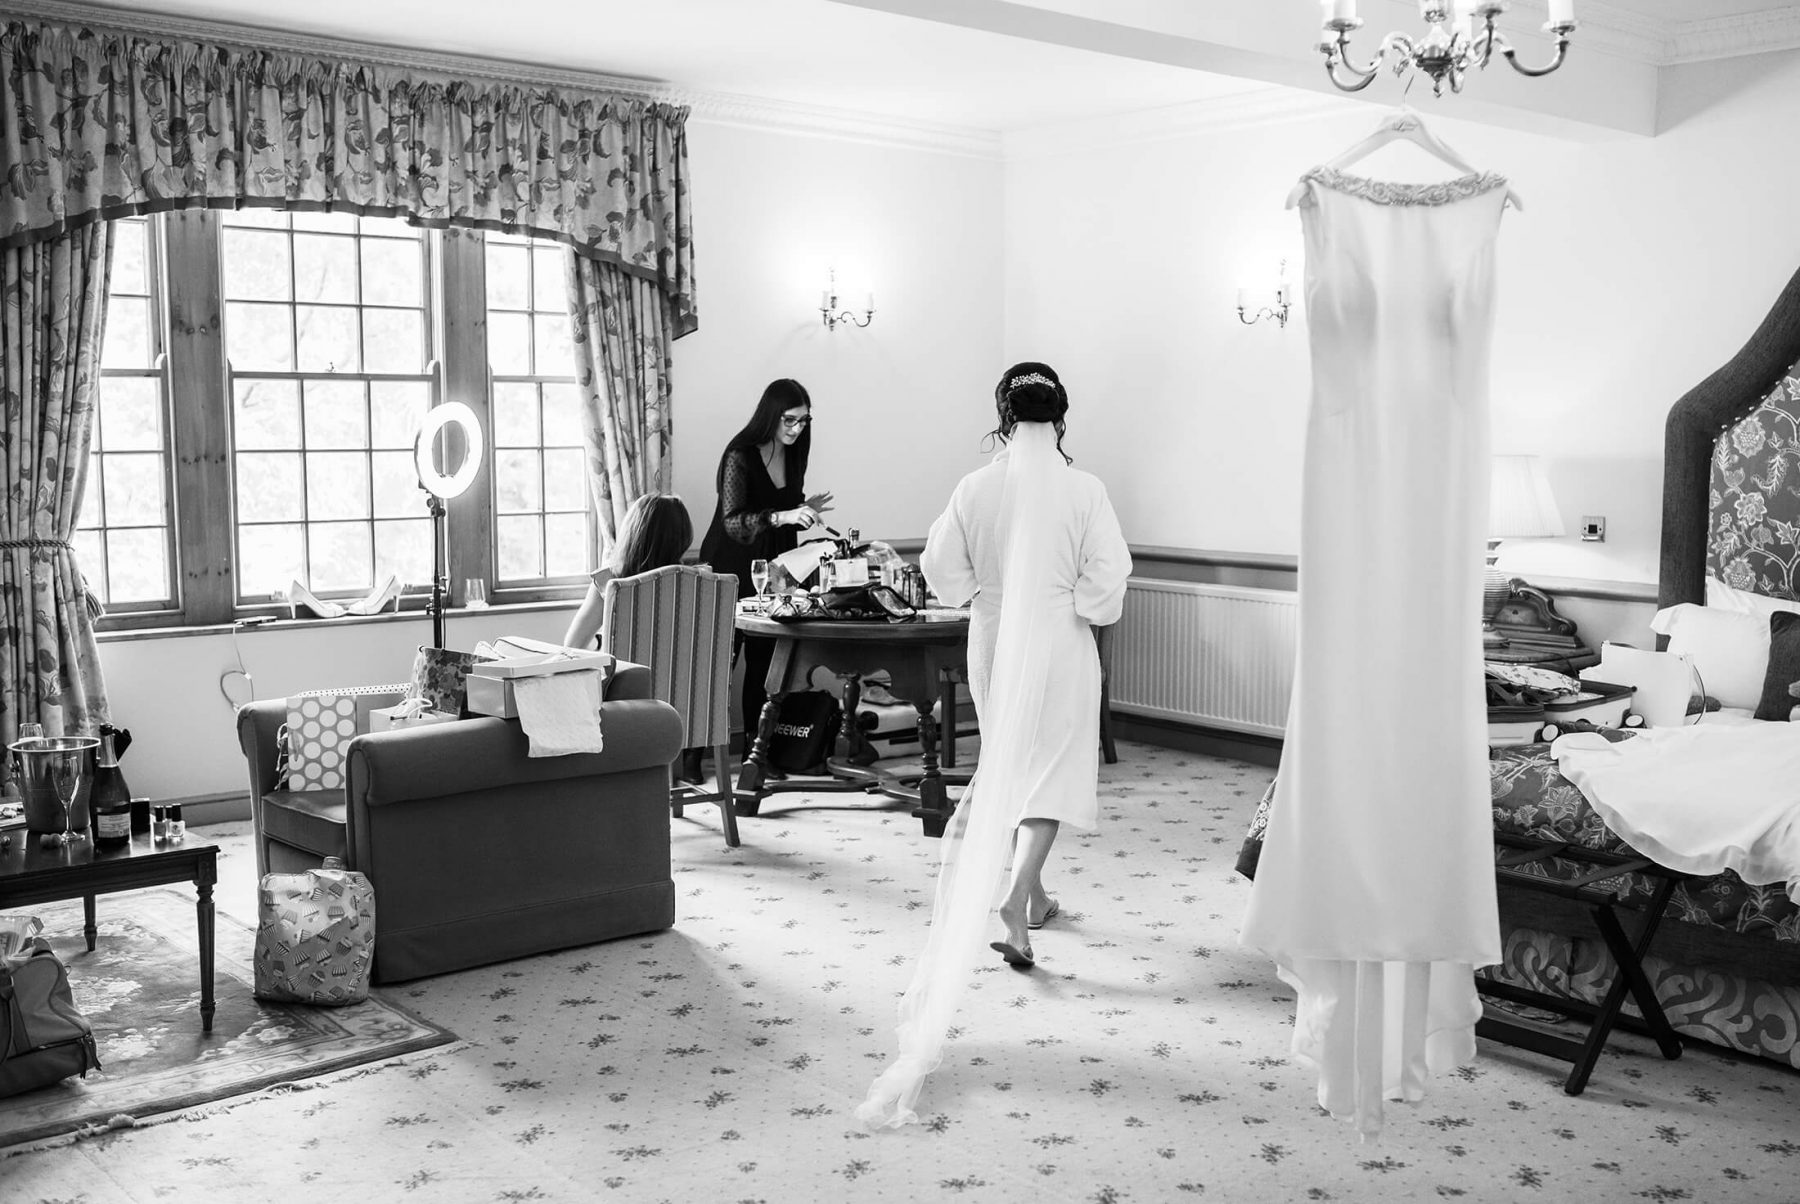 The bride and her bridal parry get ready